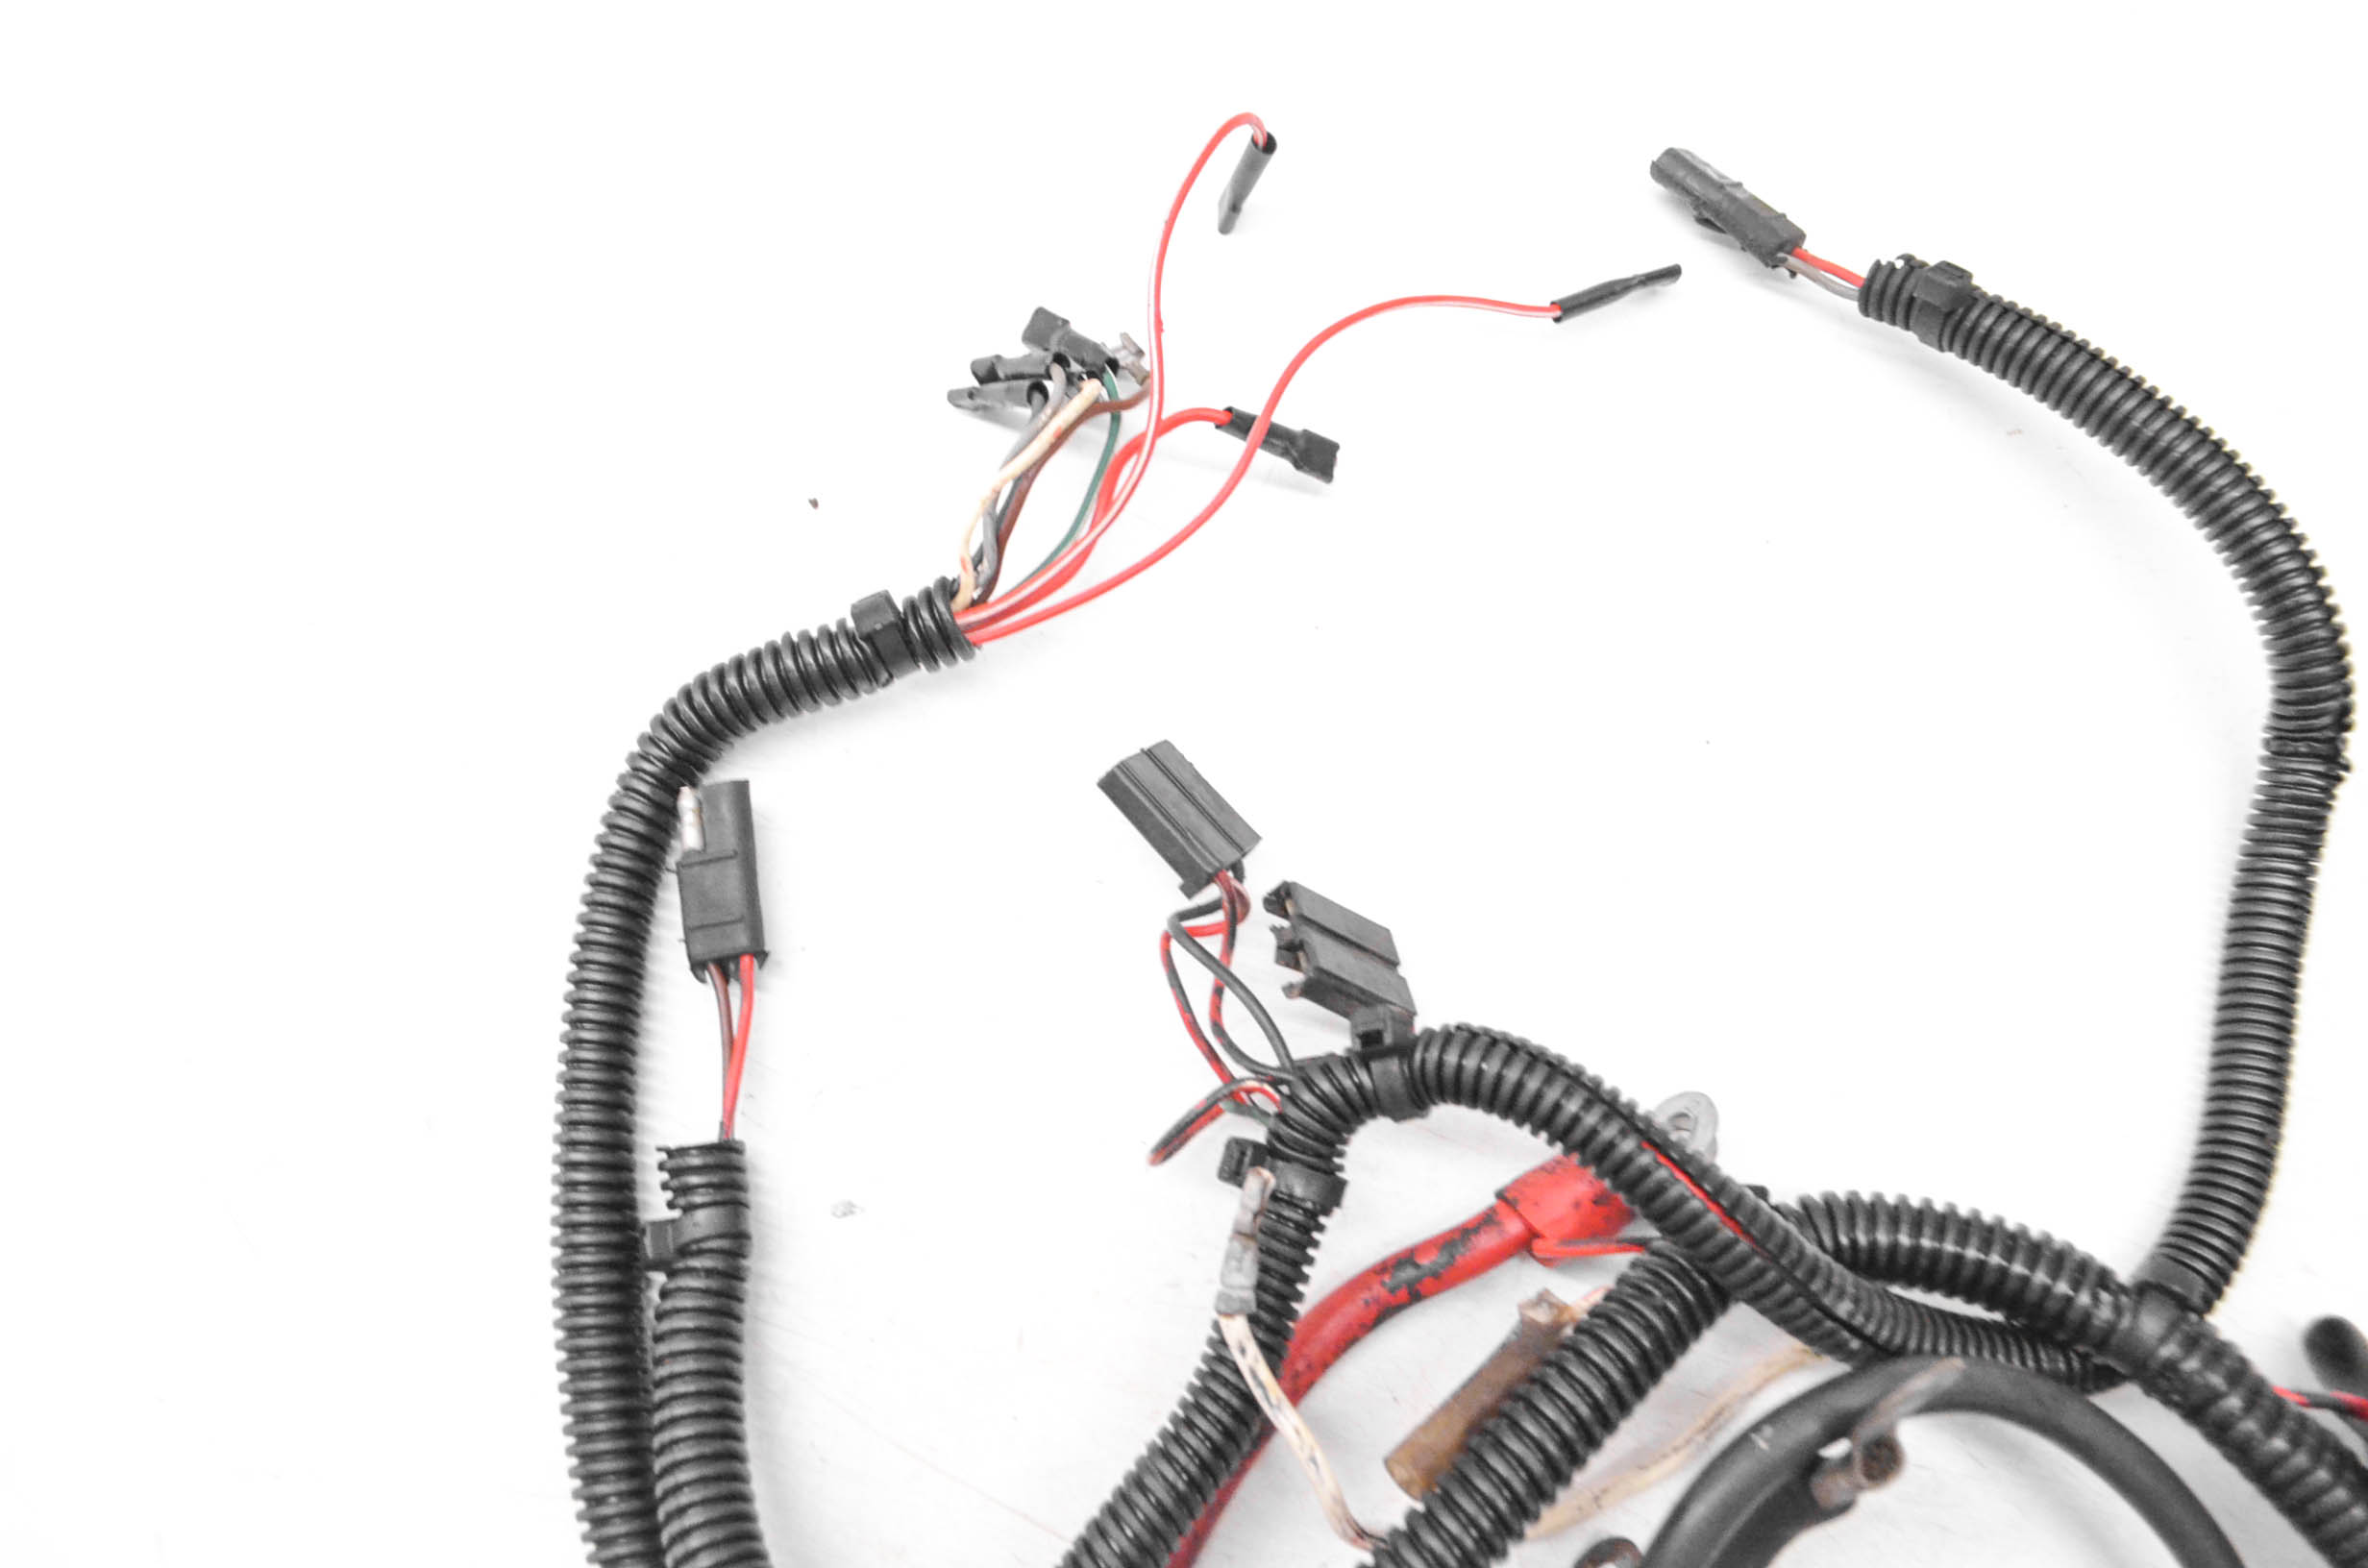 89 Polaris Trail Boss 250 4x4 Wire Harness Electrical